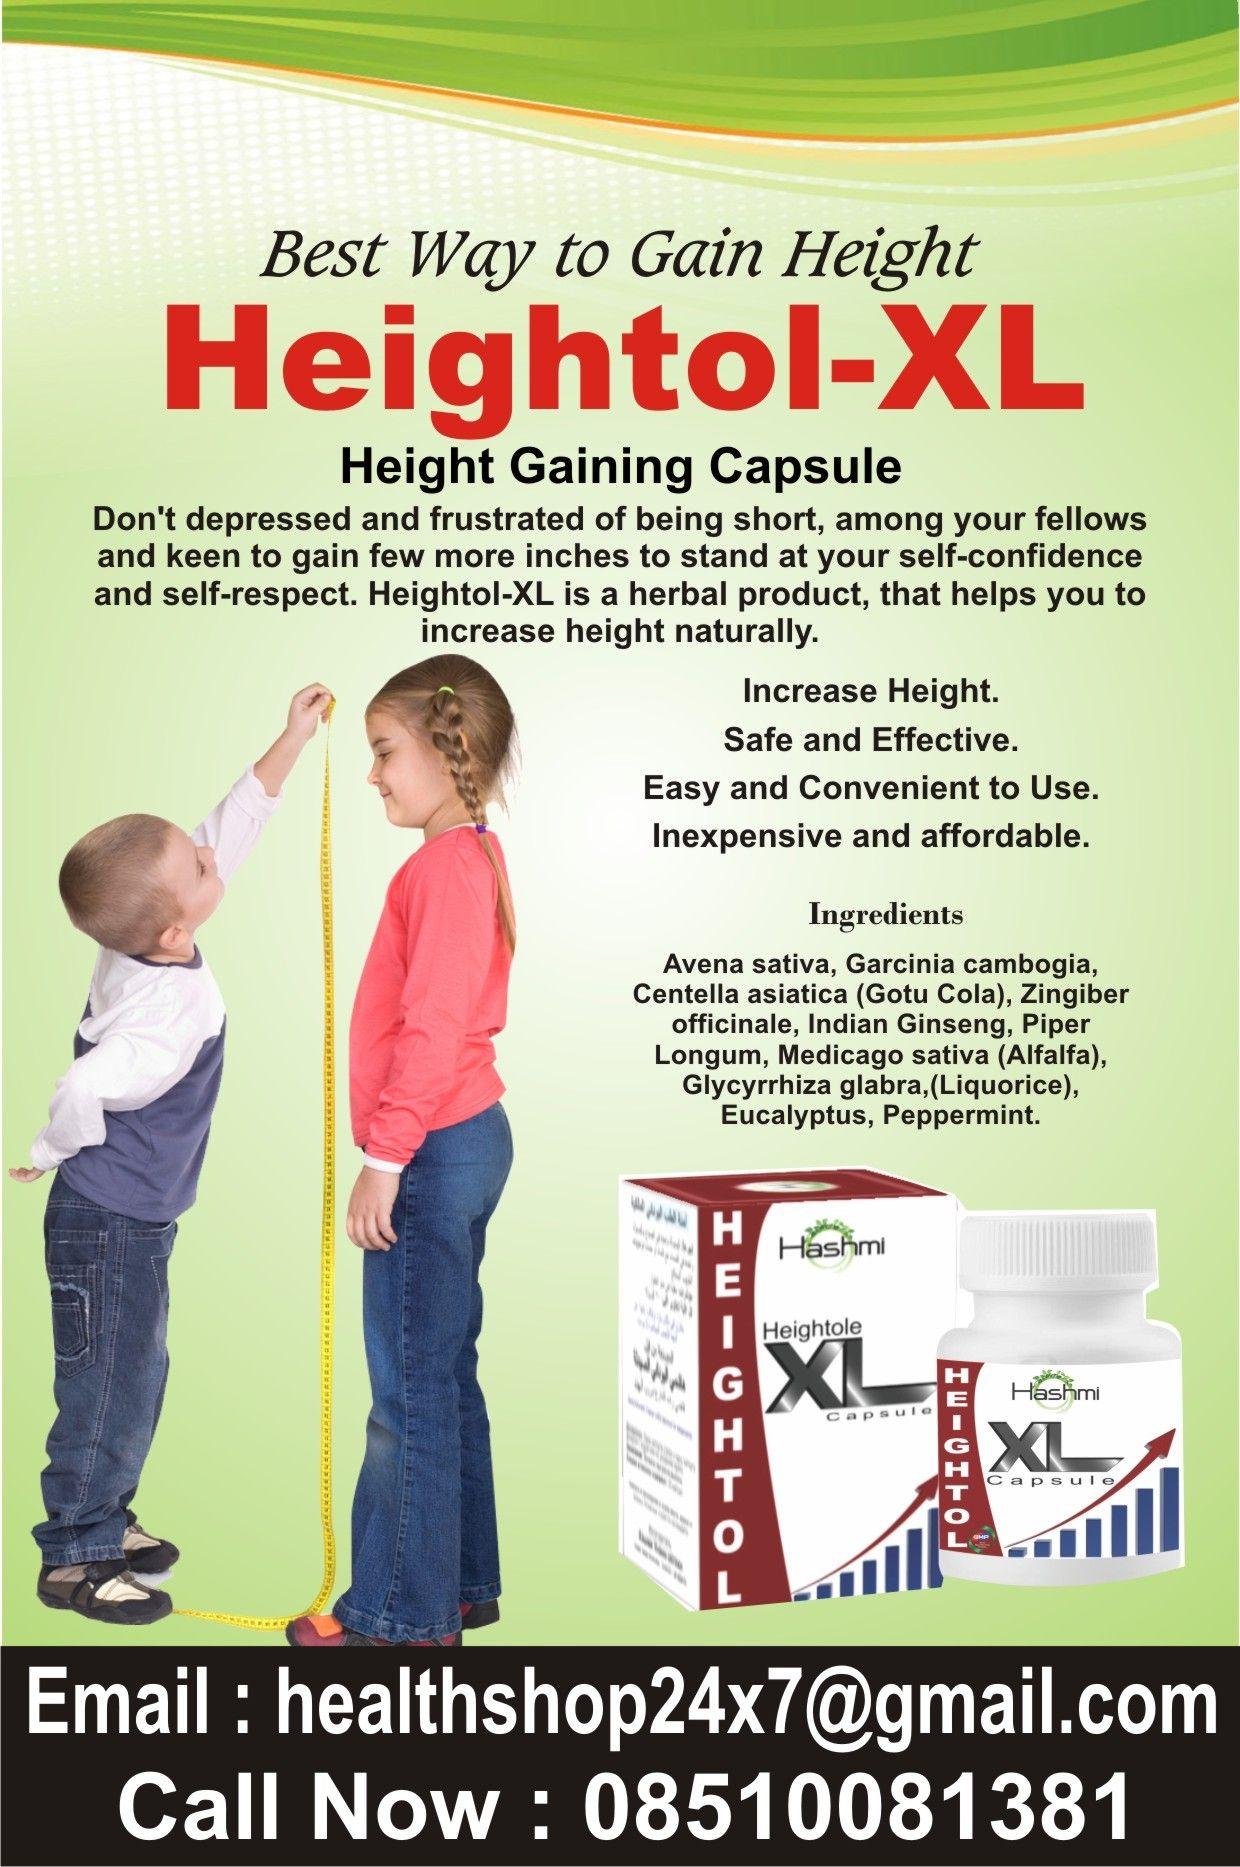 Heightol-XL Capsule Gain Height. Increase Energy. Improves metabolism.  Improves Natural Growth